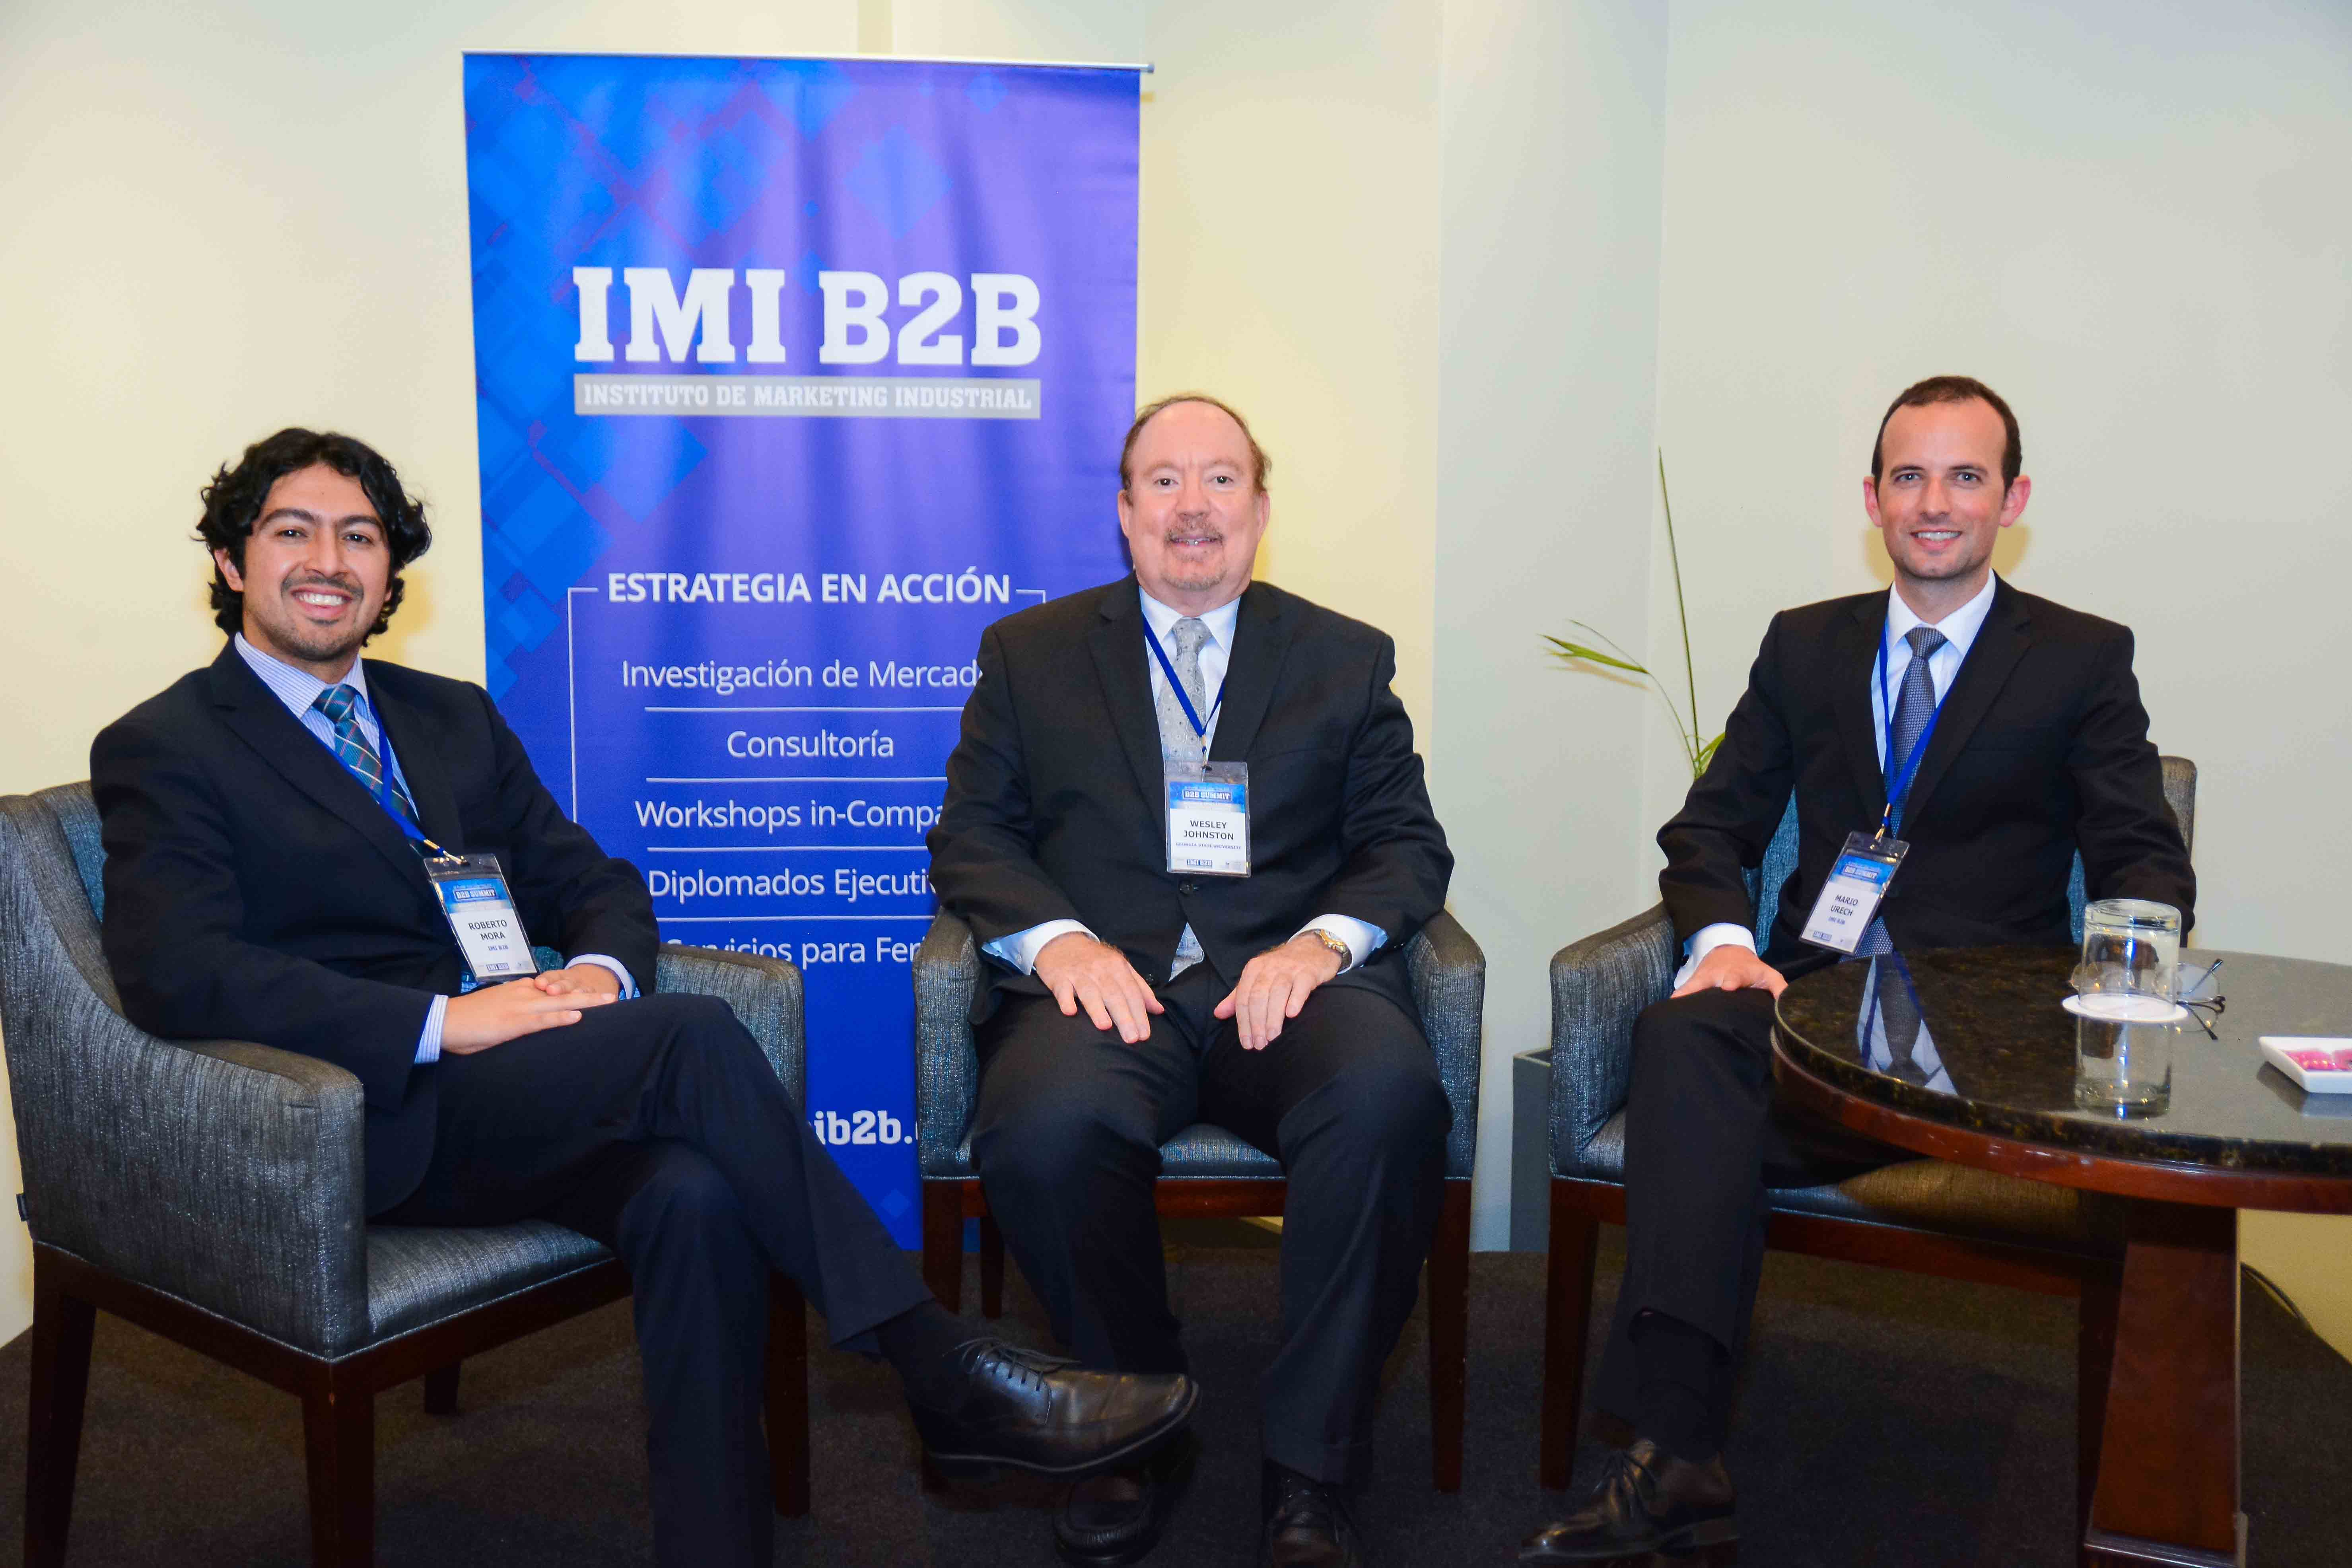 B2B SUMMIT 2019 reconocerá a CEO Industrial